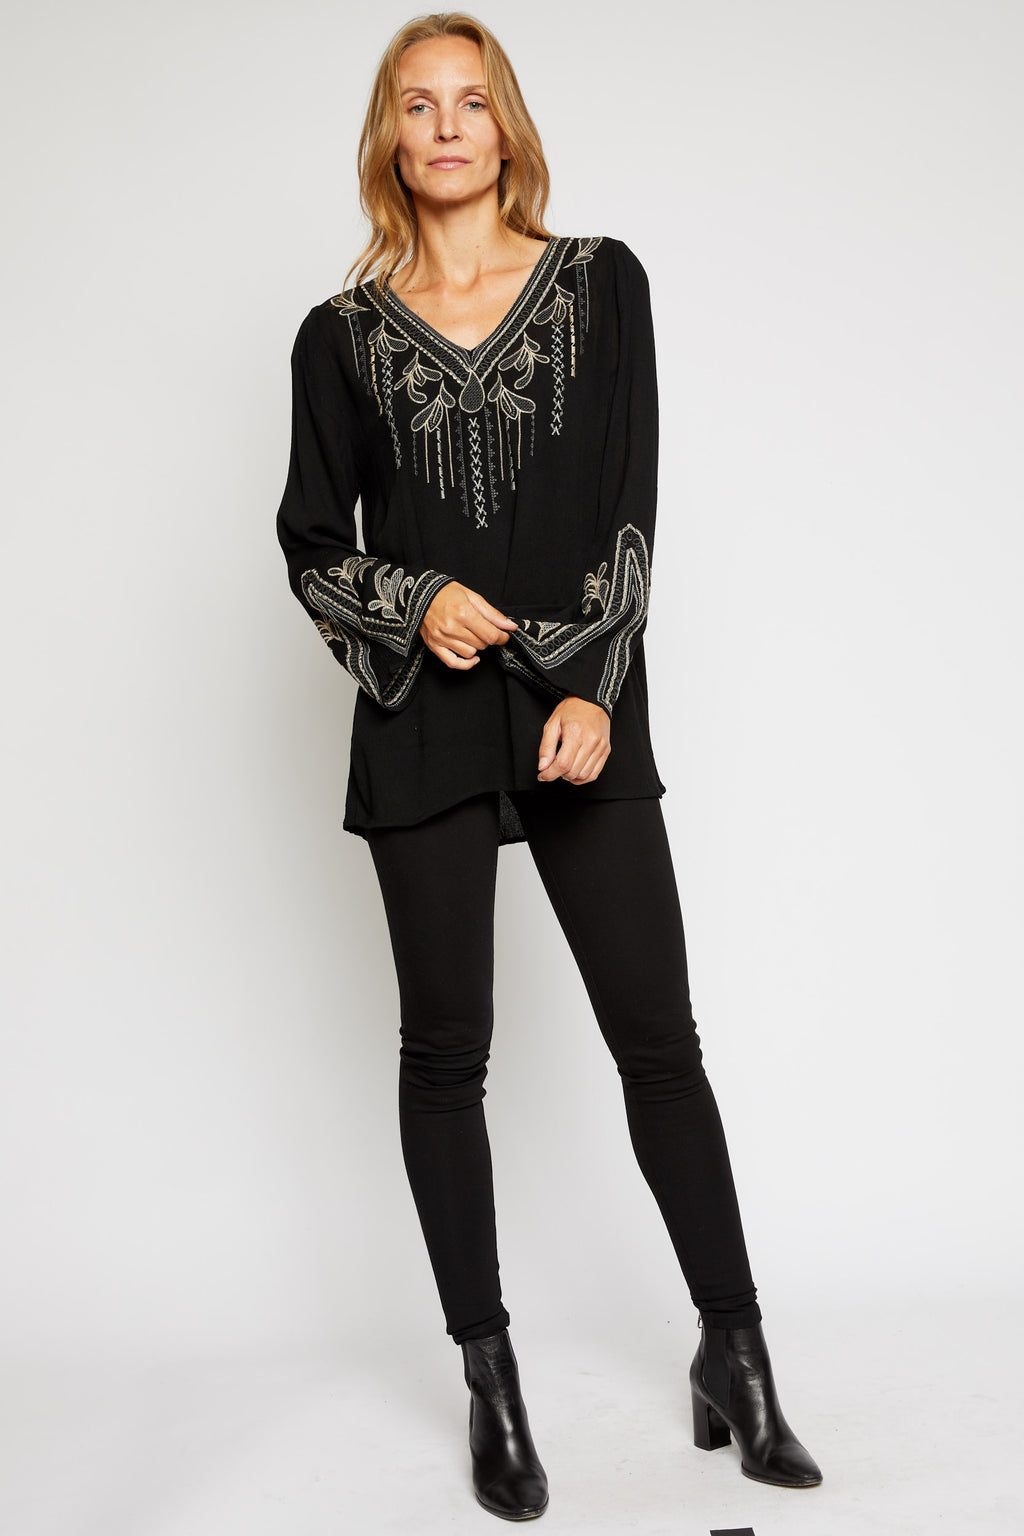 Long Sleeve Tunic Top w/ Embroidered Accents - Jacqueline B Clothing